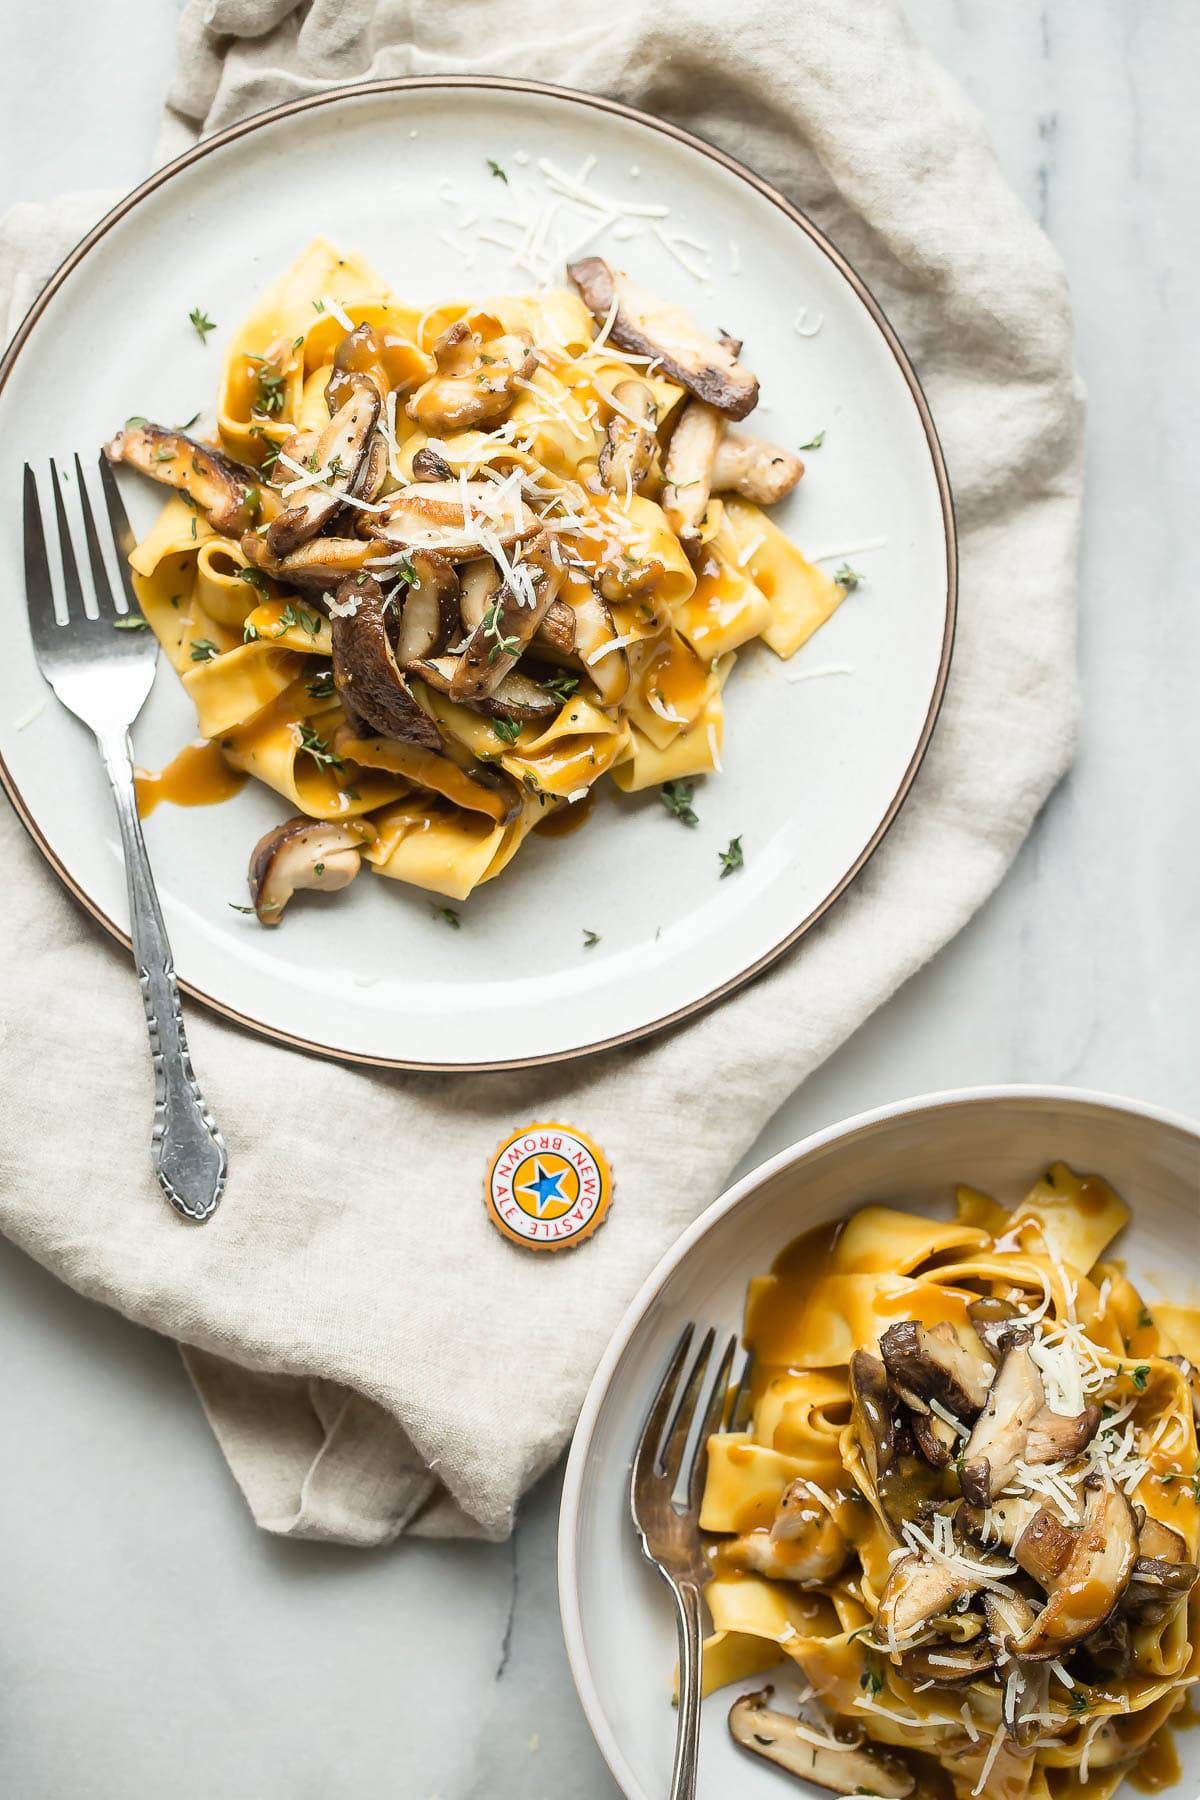 Shiitake Mushroom Pasta with a Newcastle Brown Ale Sauce.